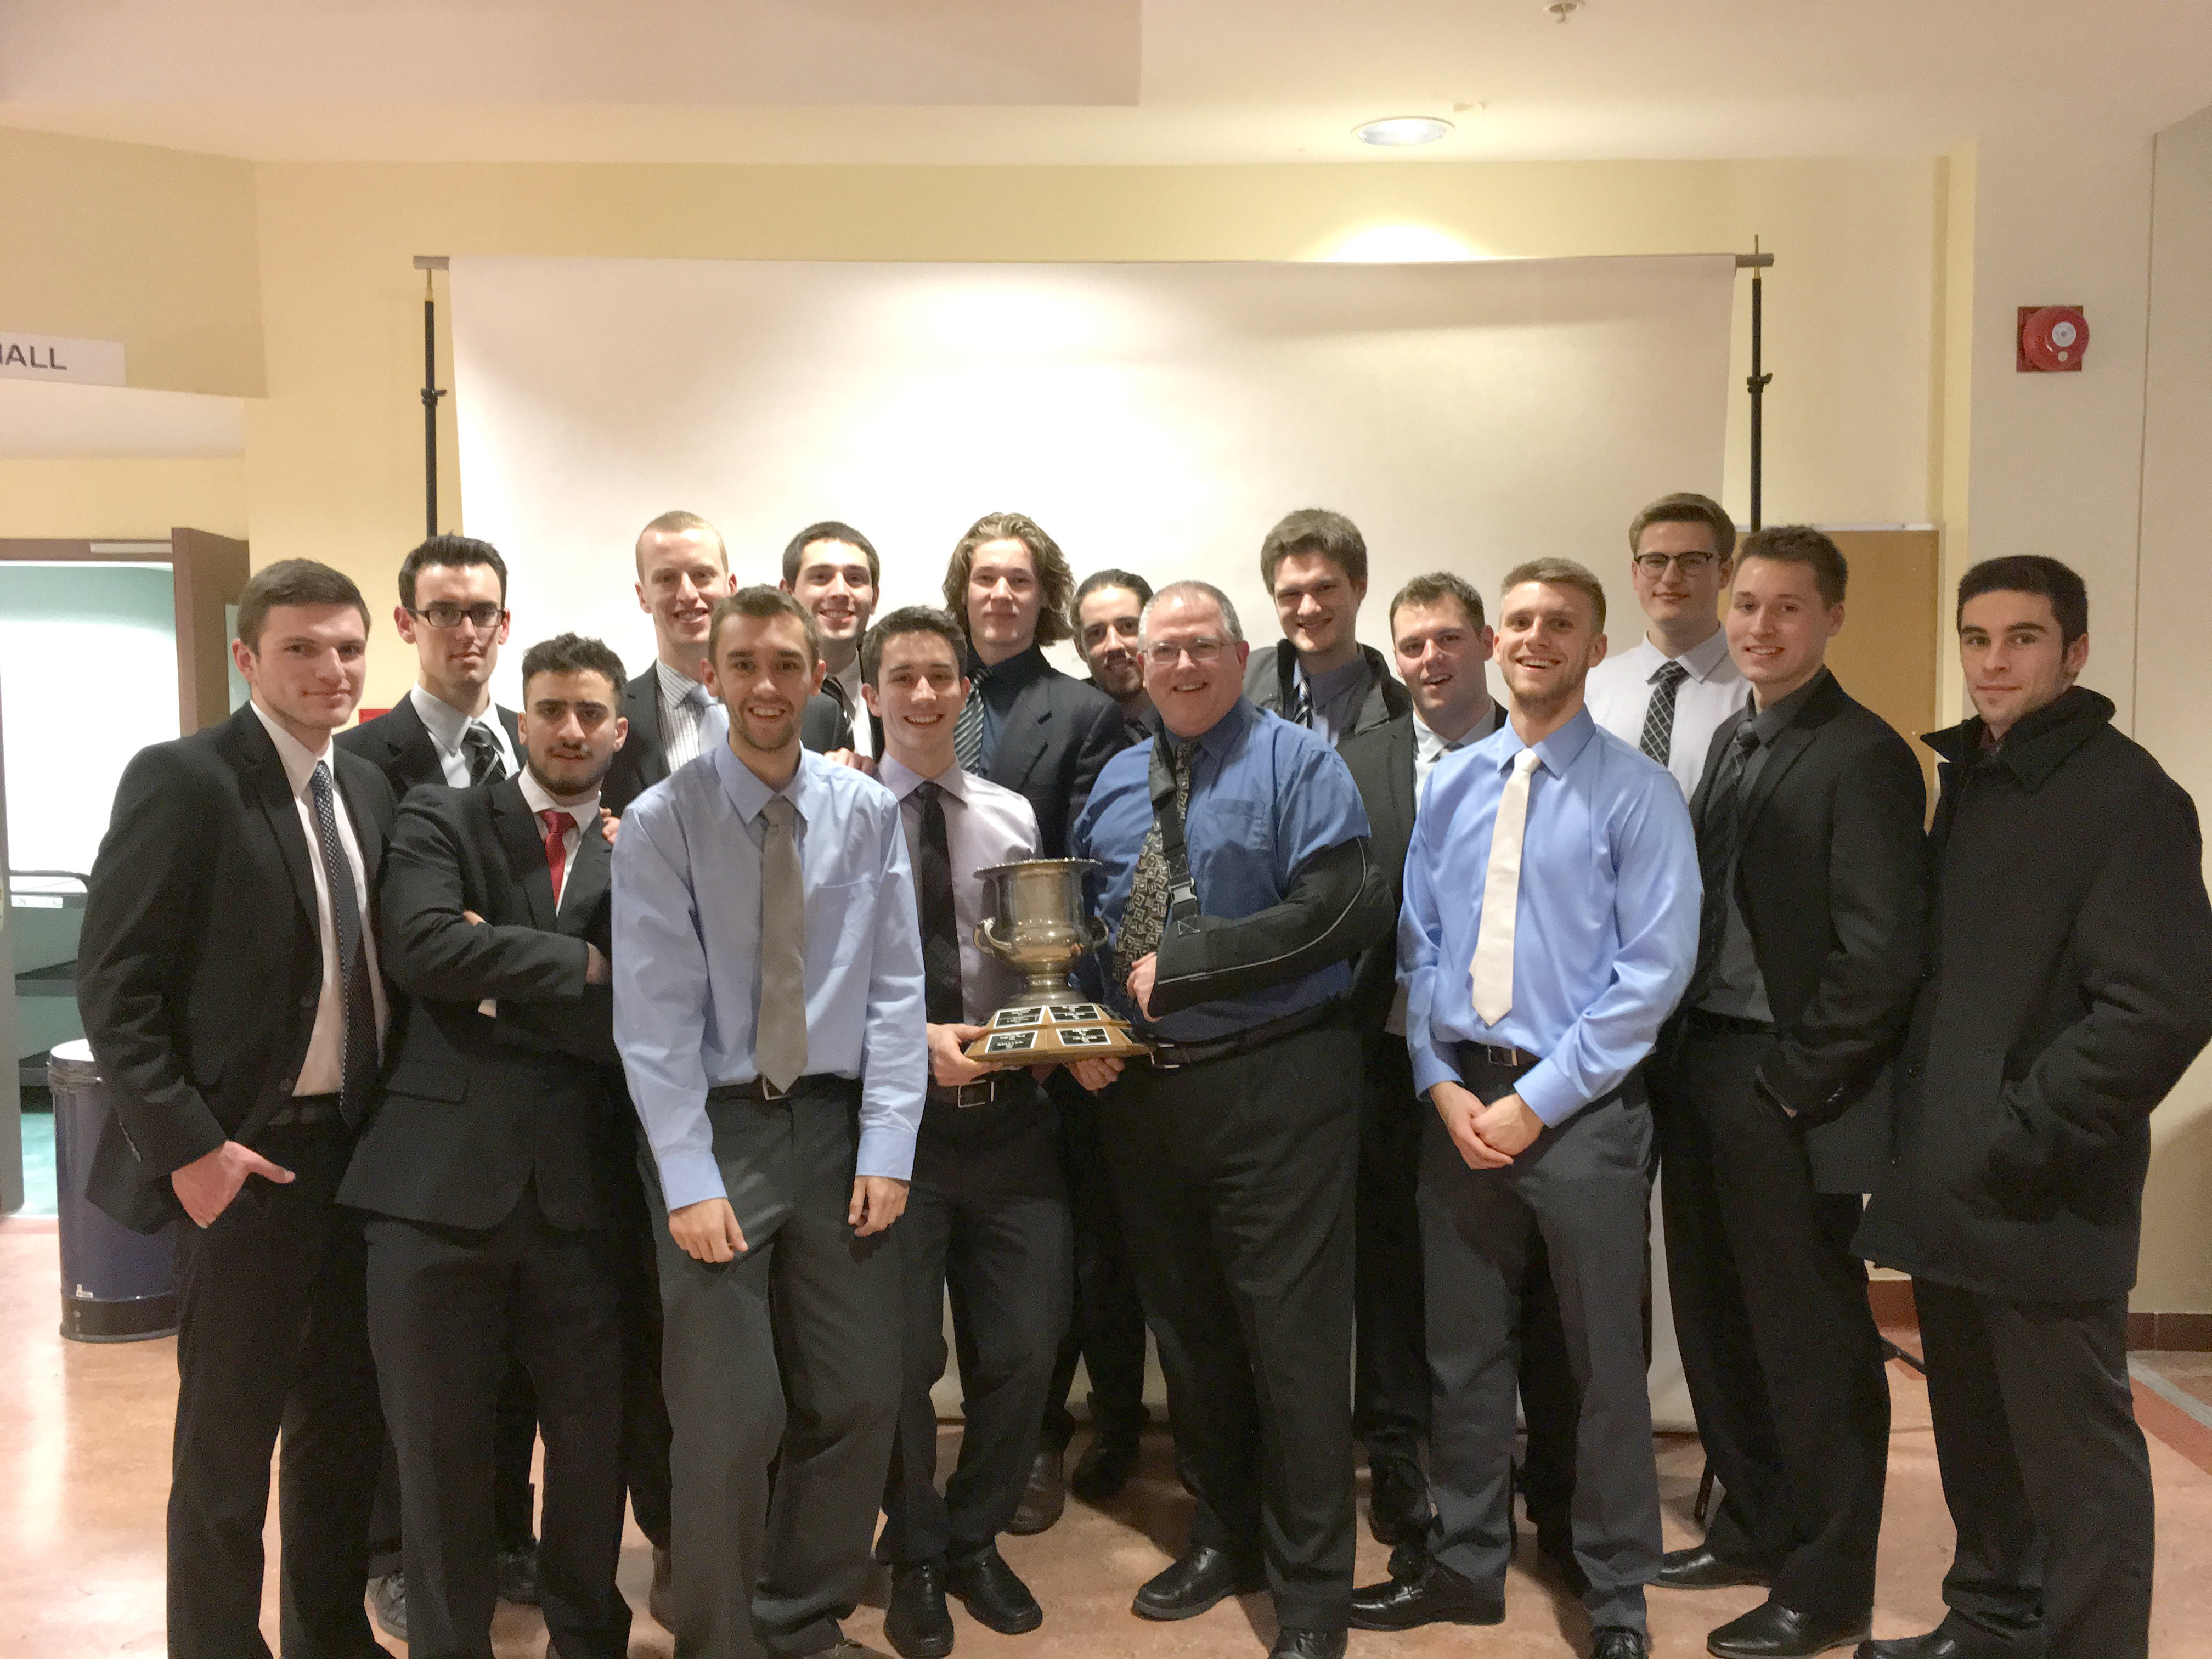 The team celebrates the wins of two of their own at the ACAA awards banquet.